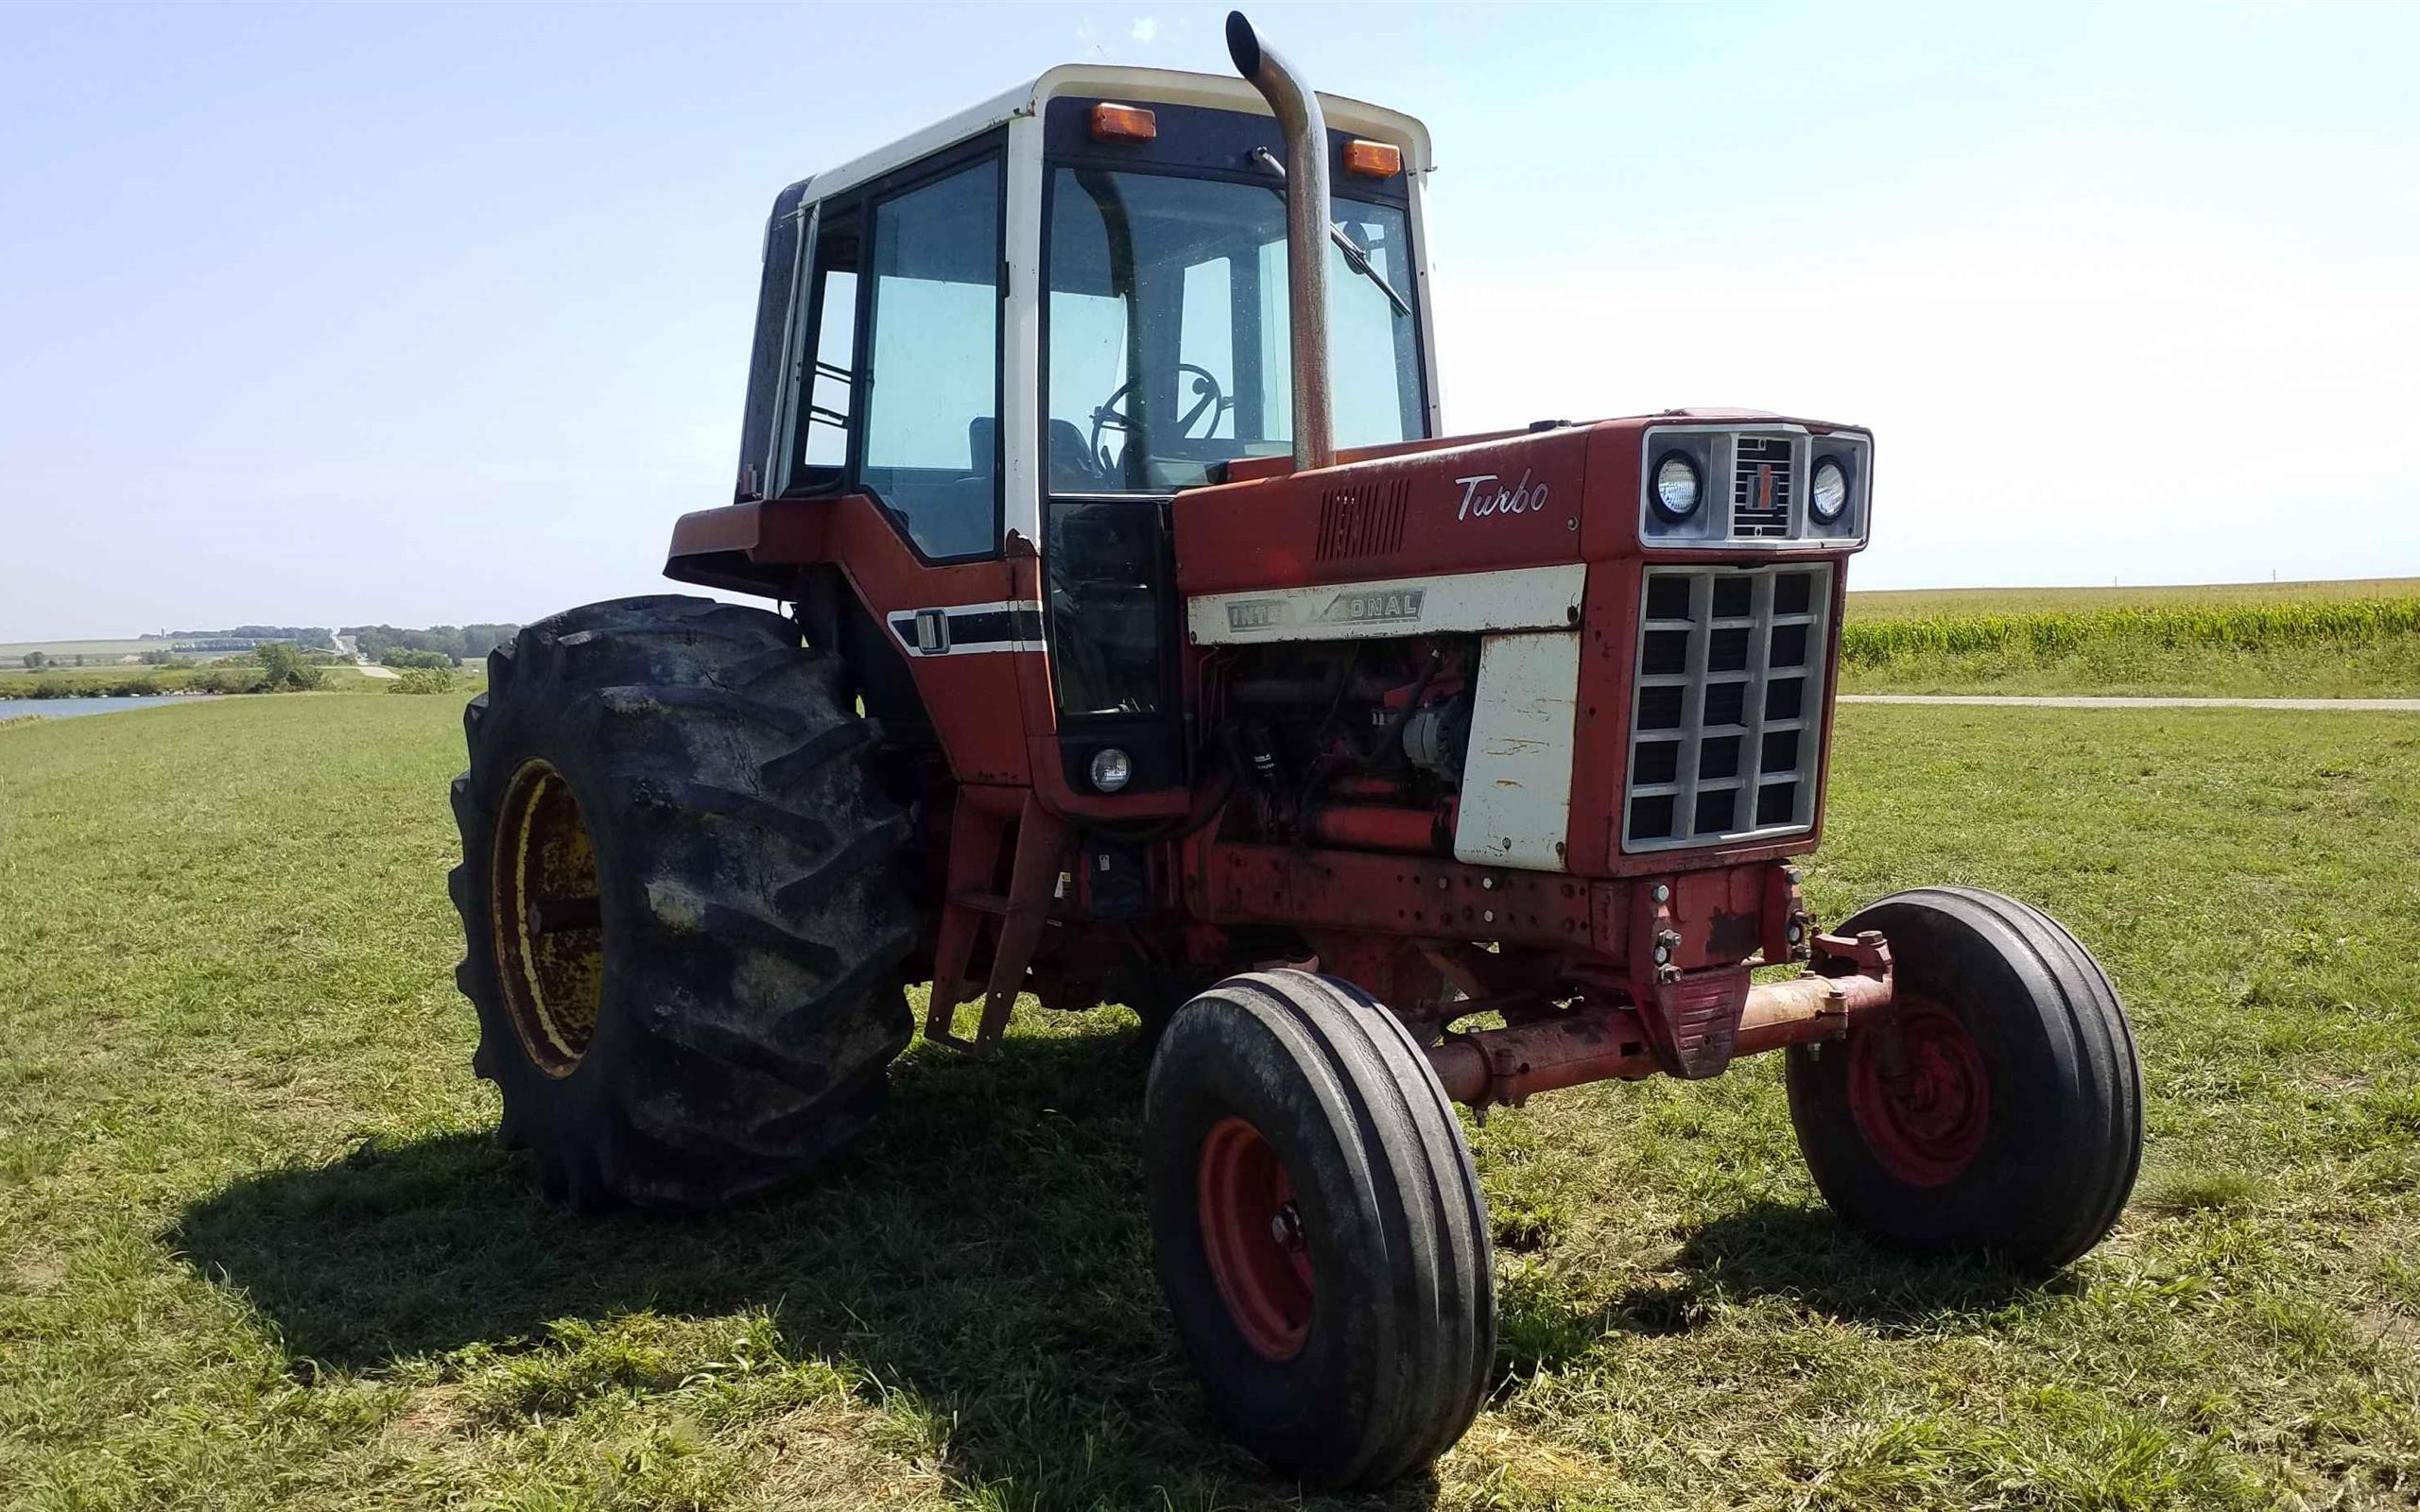 1977international14862wdtractor-9_a67ad40f34d24b87ab983012c533412e.jpg